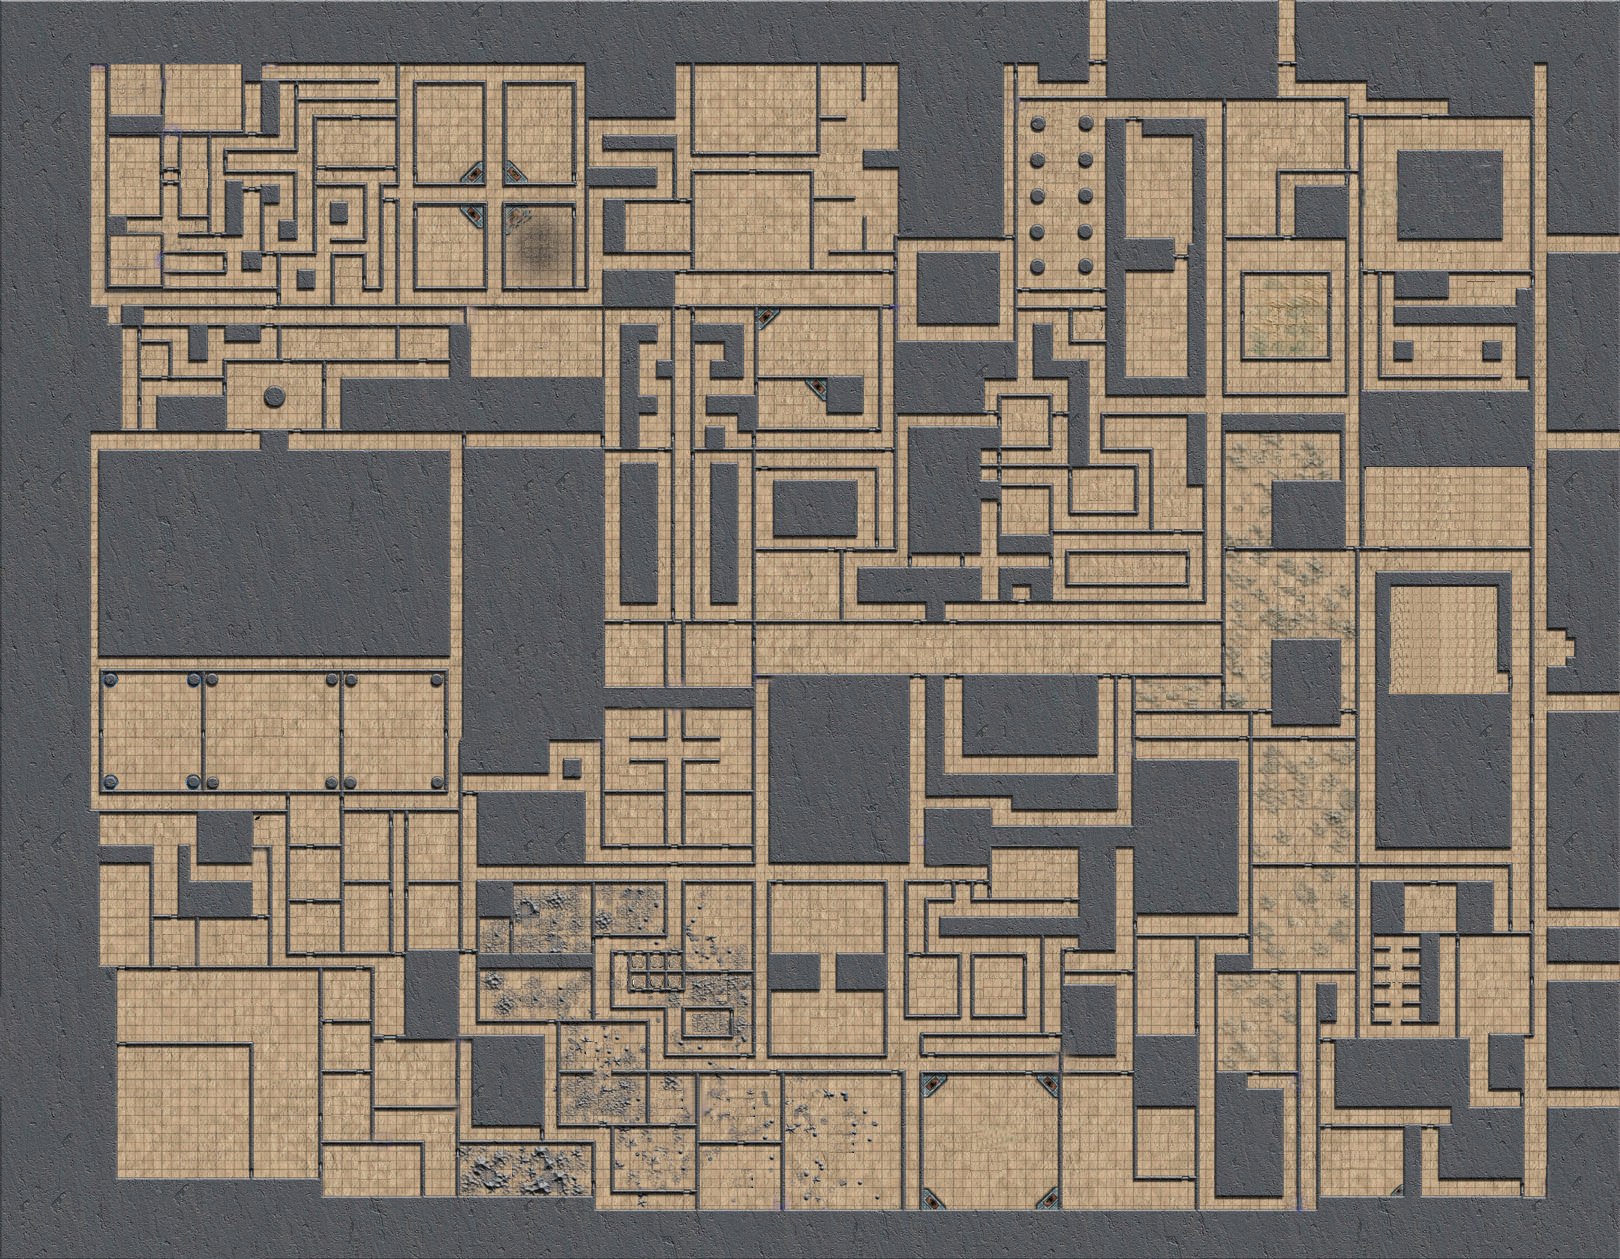 image relating to Printable Dungeon Tiles Pdf identified as Worlds Major Dungeon Downloads